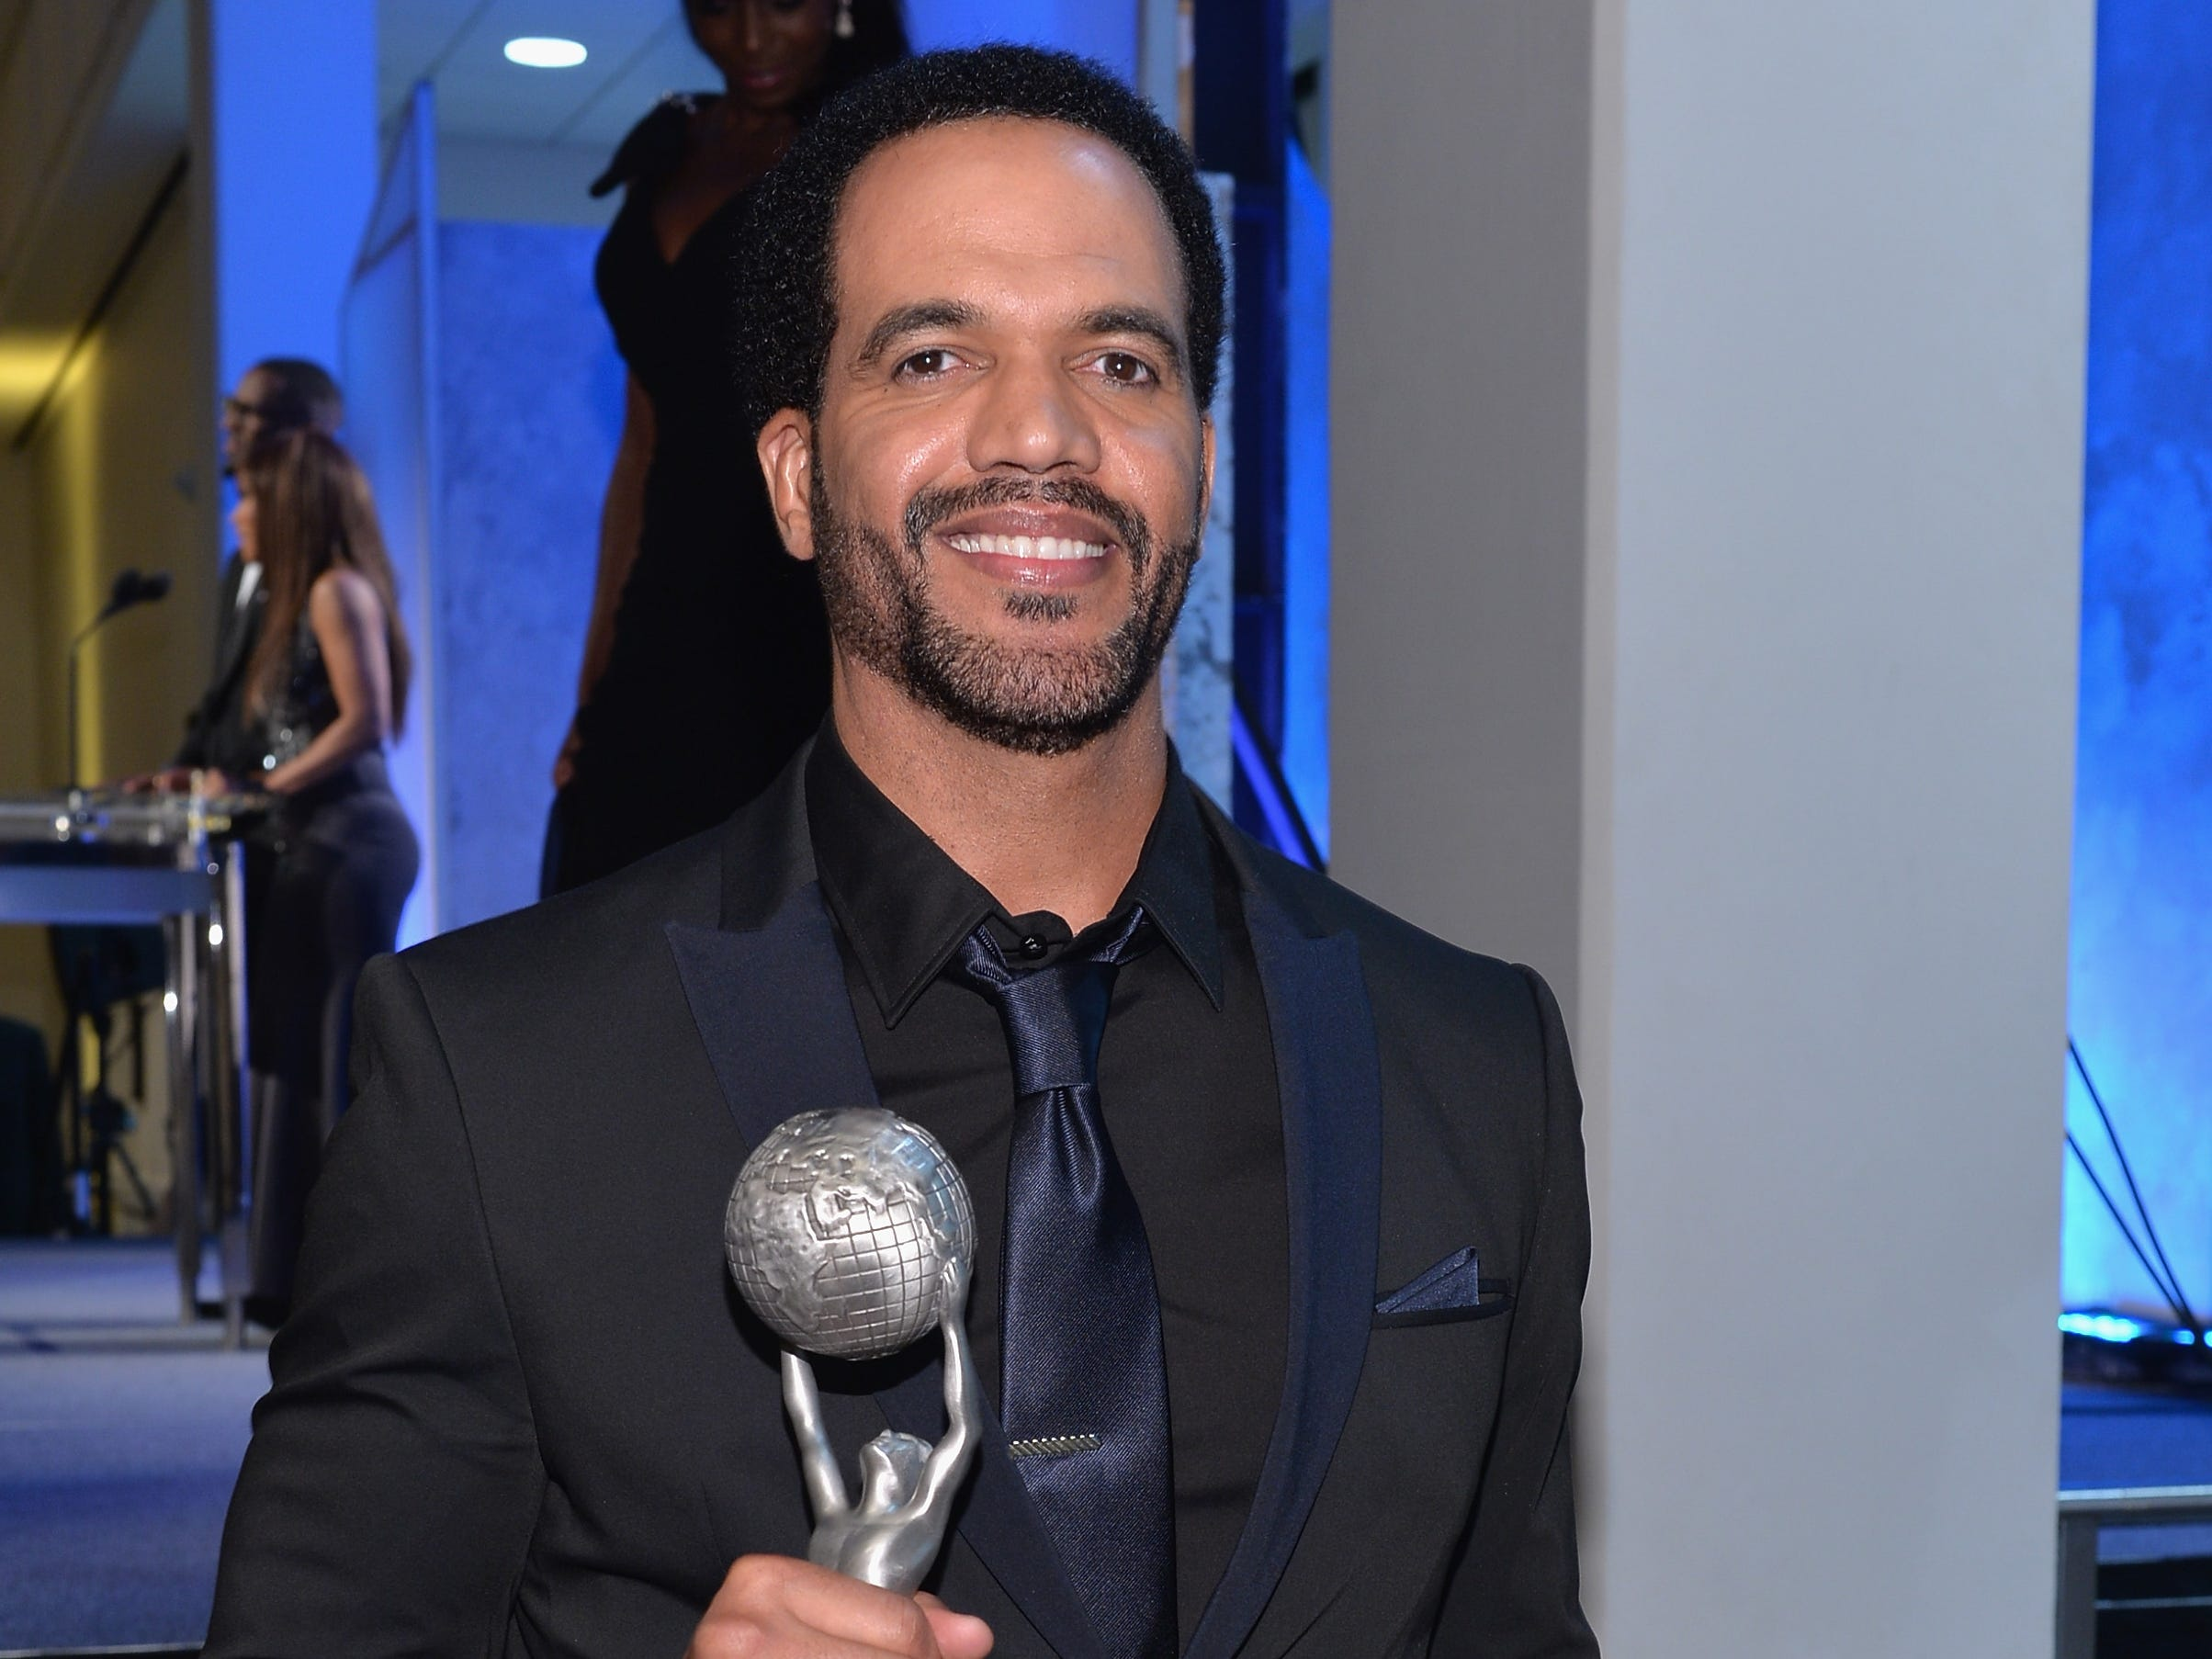 PASADENA, CA - FEBRUARY 21:  Actor Kristoff St. John attends the 45th NAACP Awards Non-Televised Awards Ceremony at the Pasadena Civic Auditorium on February 21, 2014 in Pasadena, California.  (Photo by Alberto E. Rodriguez/Getty Images for NAACP) ORG XMIT: 474224457 [Via MerlinFTP Drop]